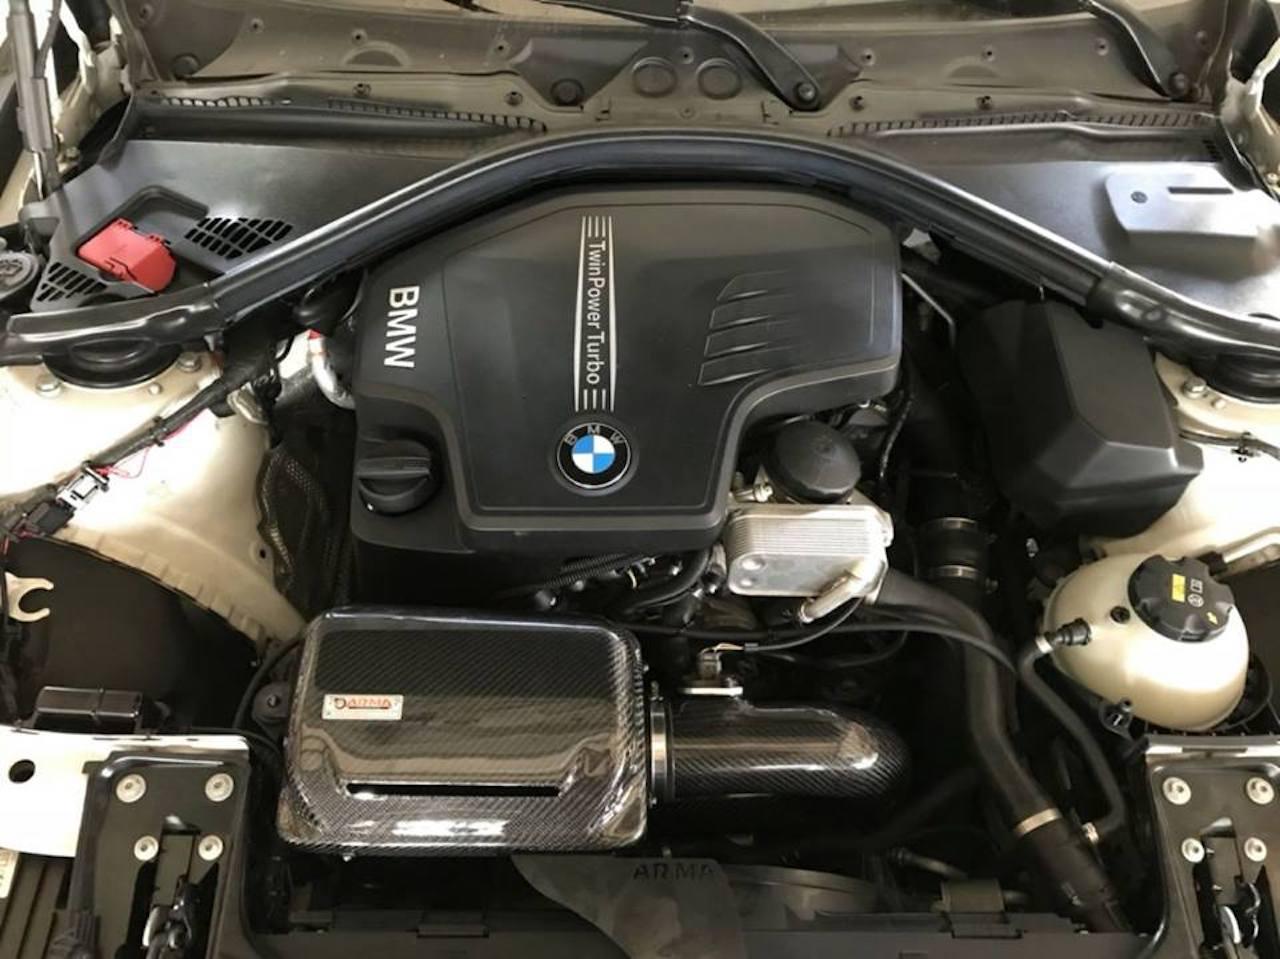 Honda Dealers In Ma >> BMW F30 328i Cold Carbon Intake - ARMA Speed